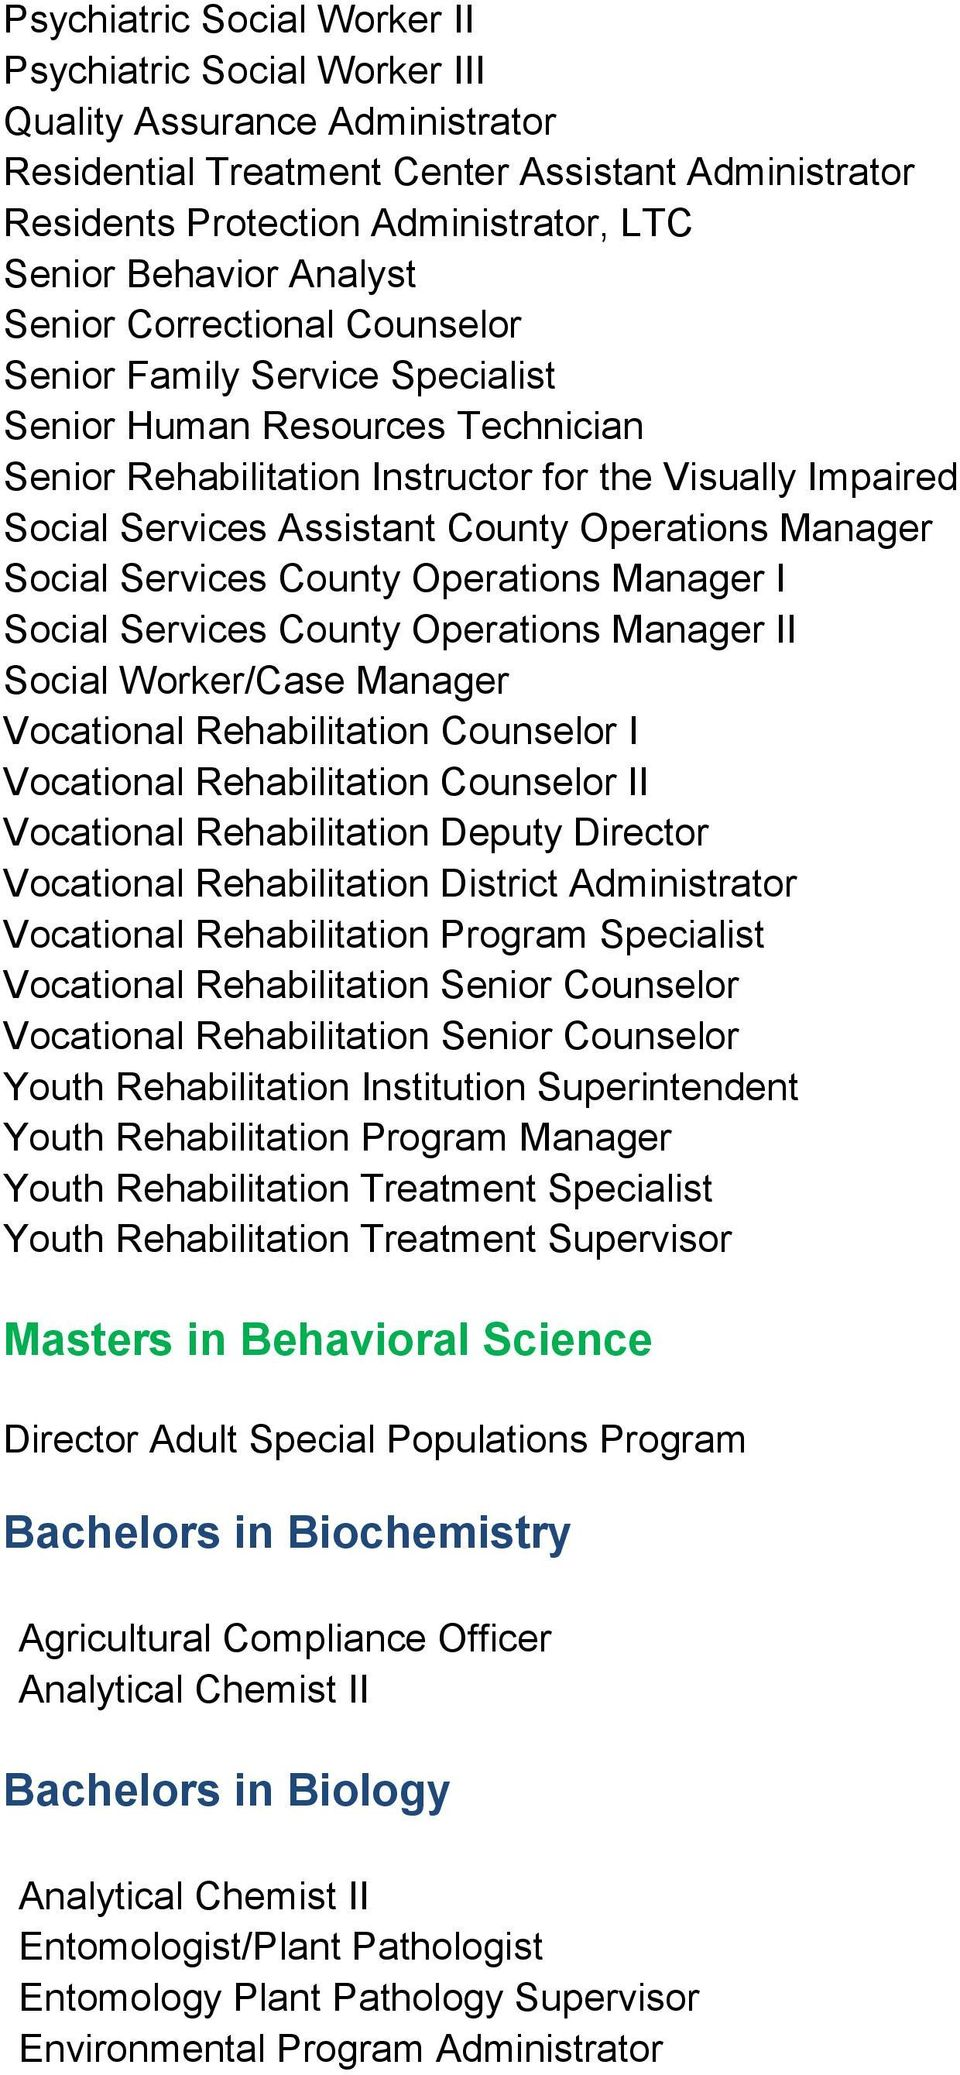 Operations Manager Social Services County Operations Manager I Social Services County Operations Manager II Social Worker/Case Manager Vocational Rehabilitation Counselor I Vocational Rehabilitation